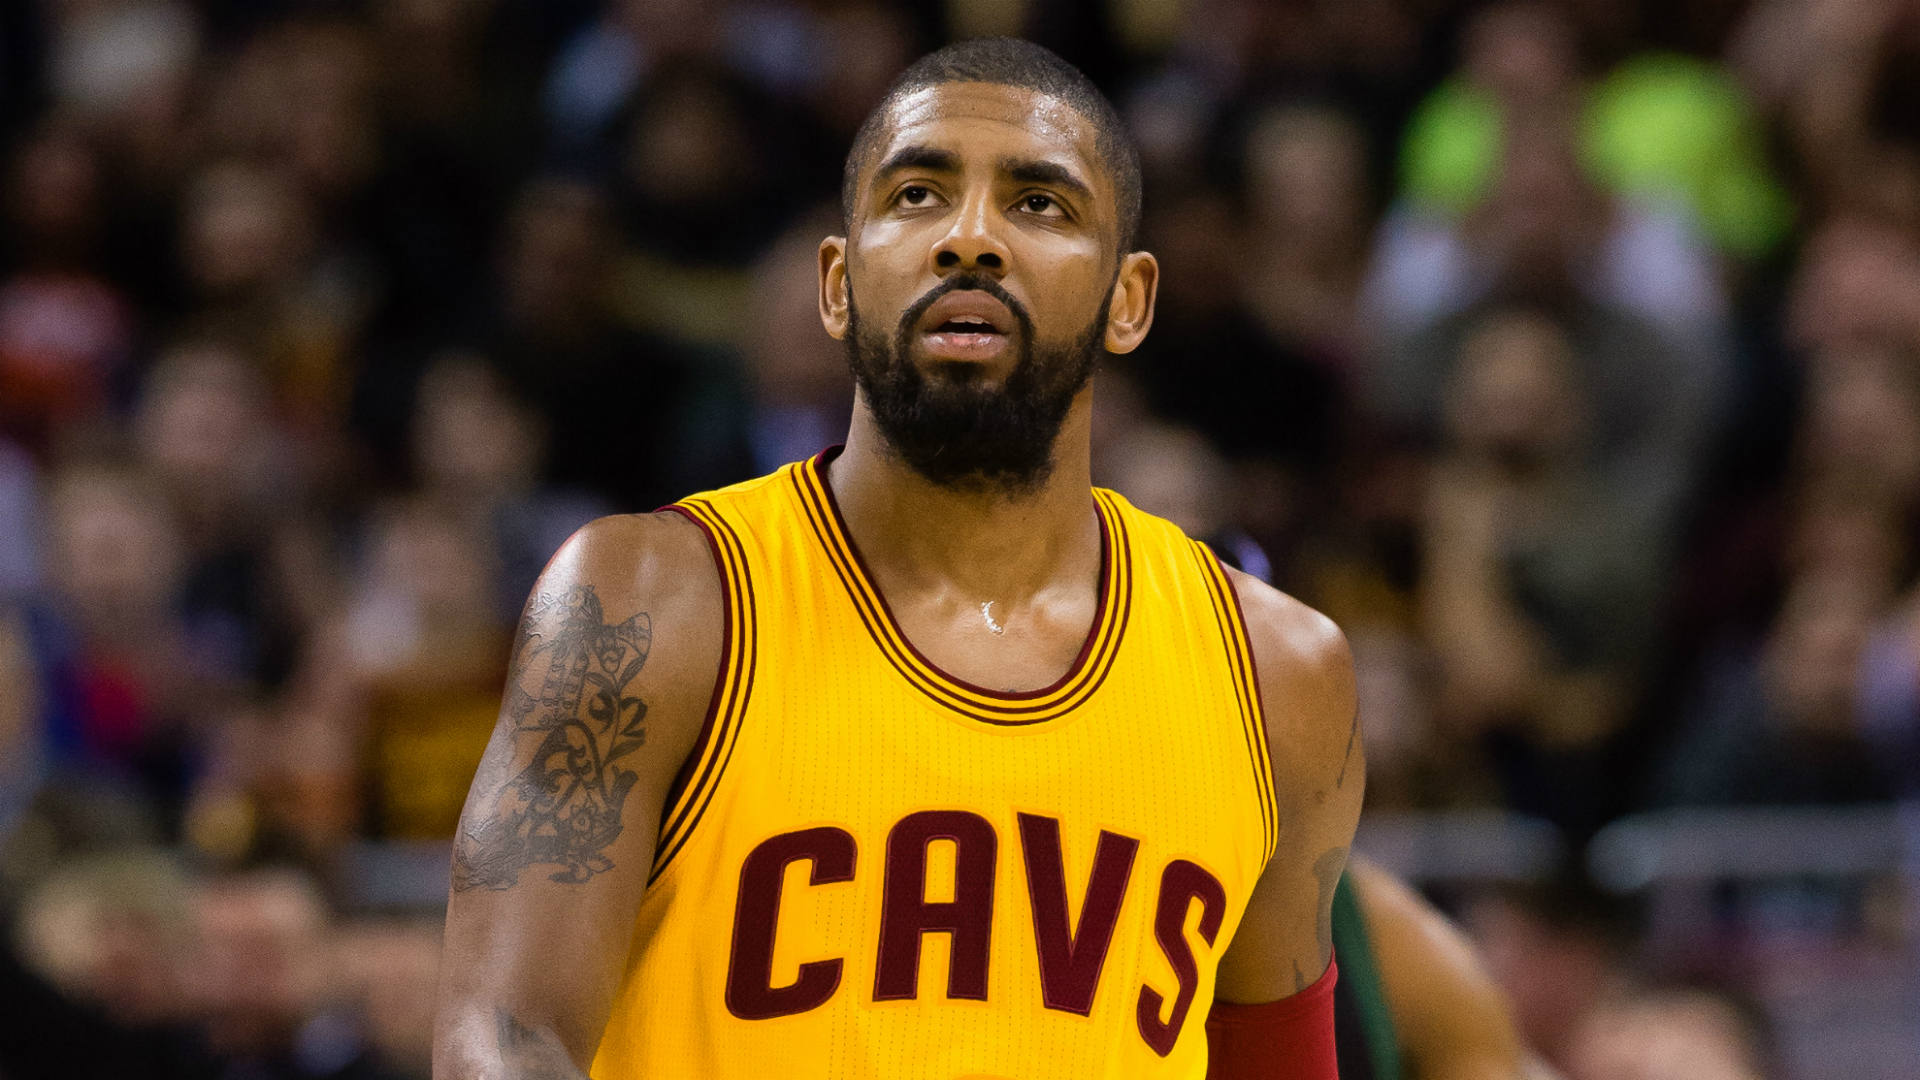 Kyrie-irving-33117-usnews-getty-ftr_kd8fuothe2hb1oo18anmzspua